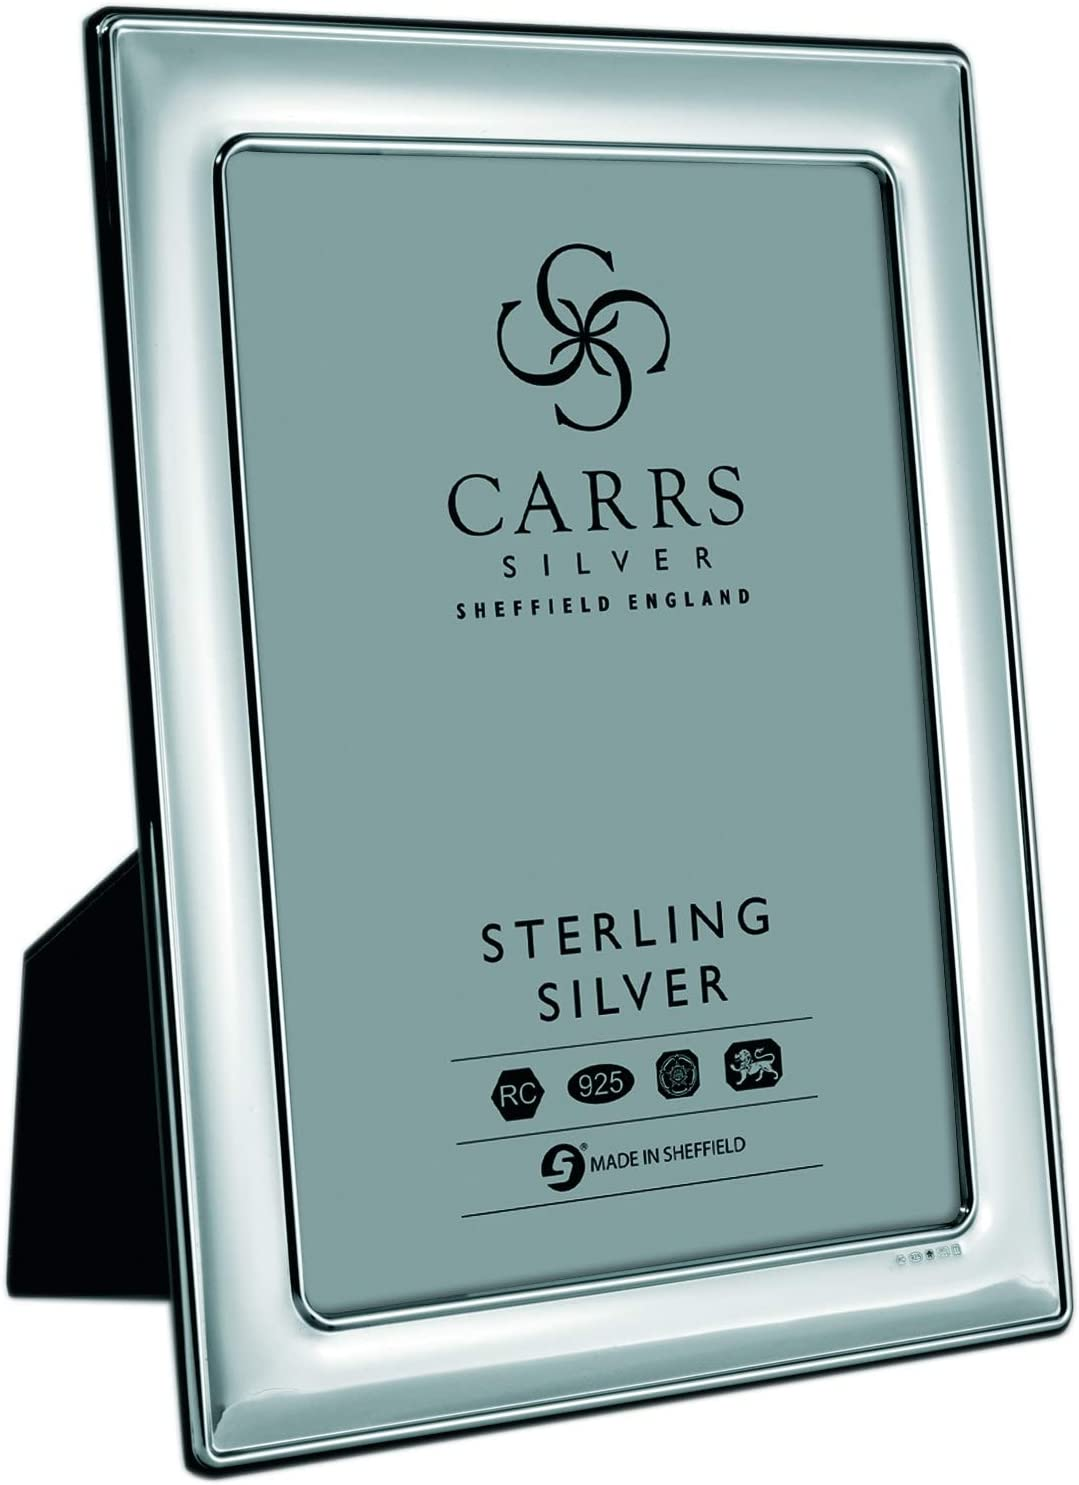 Carrs Silver Sterling Silver Plain Photograph Frame 10 X 8 With Wood Back Can Stand Portrait Or Landscape Amazon Co Uk Kitchen Home